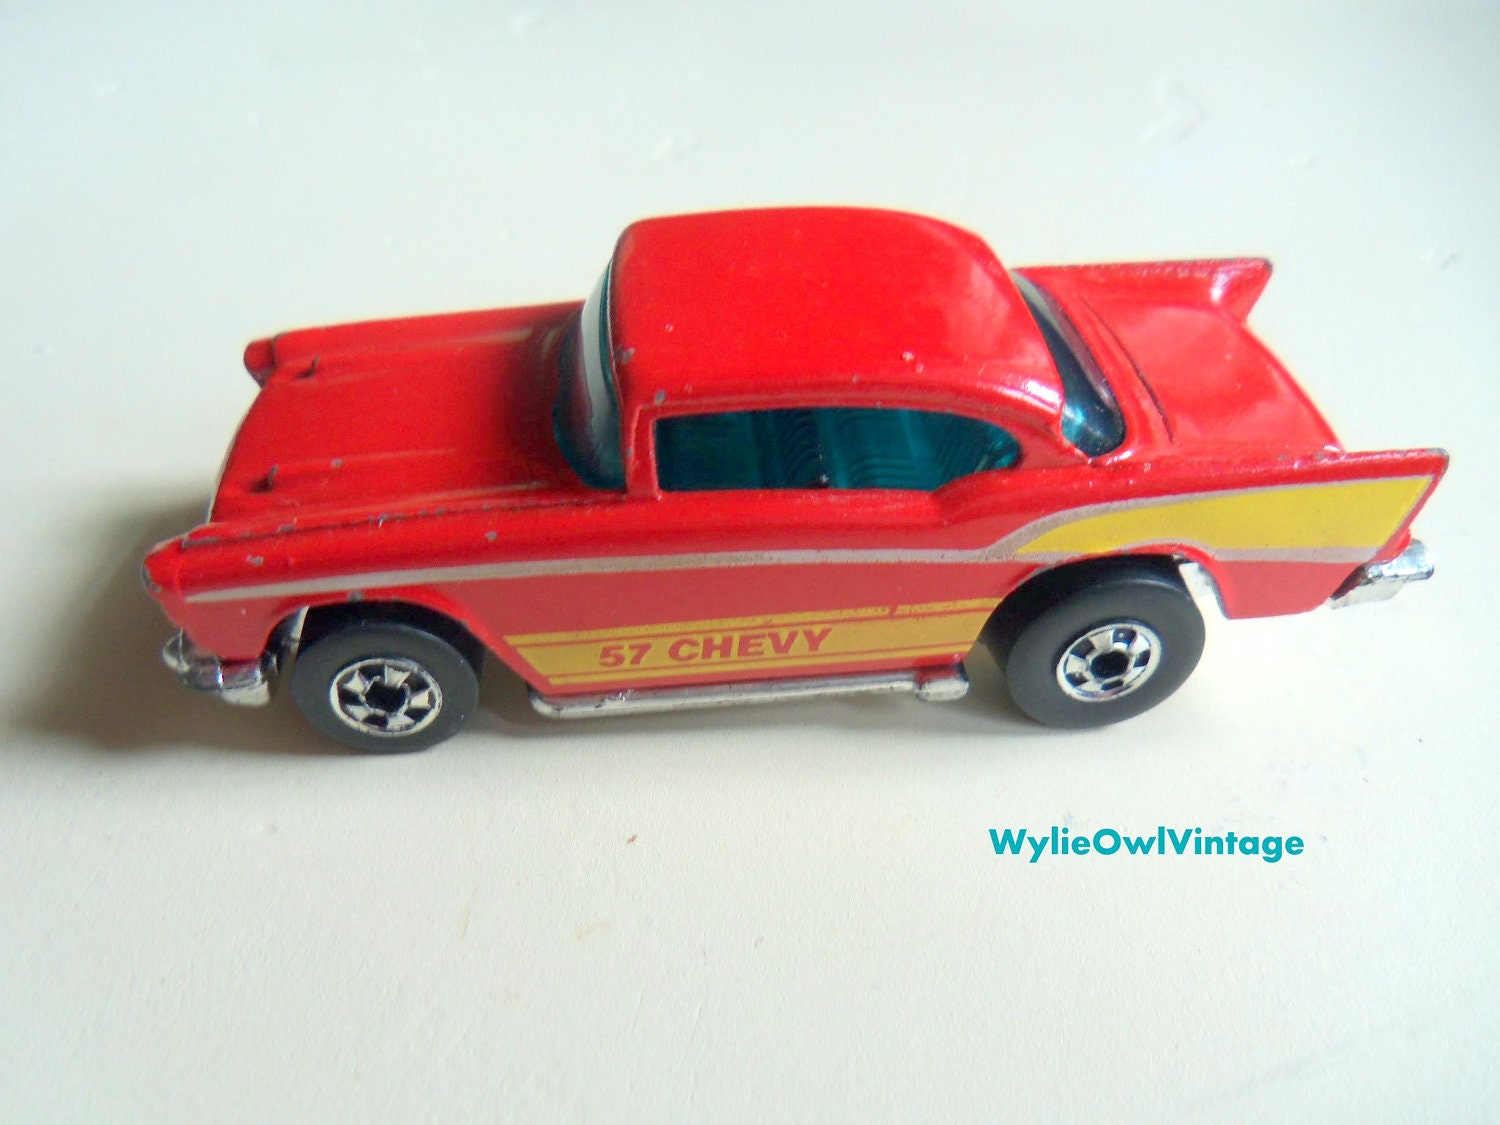 Vintage Hot Wheels 57 Chevy Made in Hong Kong 1976 - WylieOwlVintage